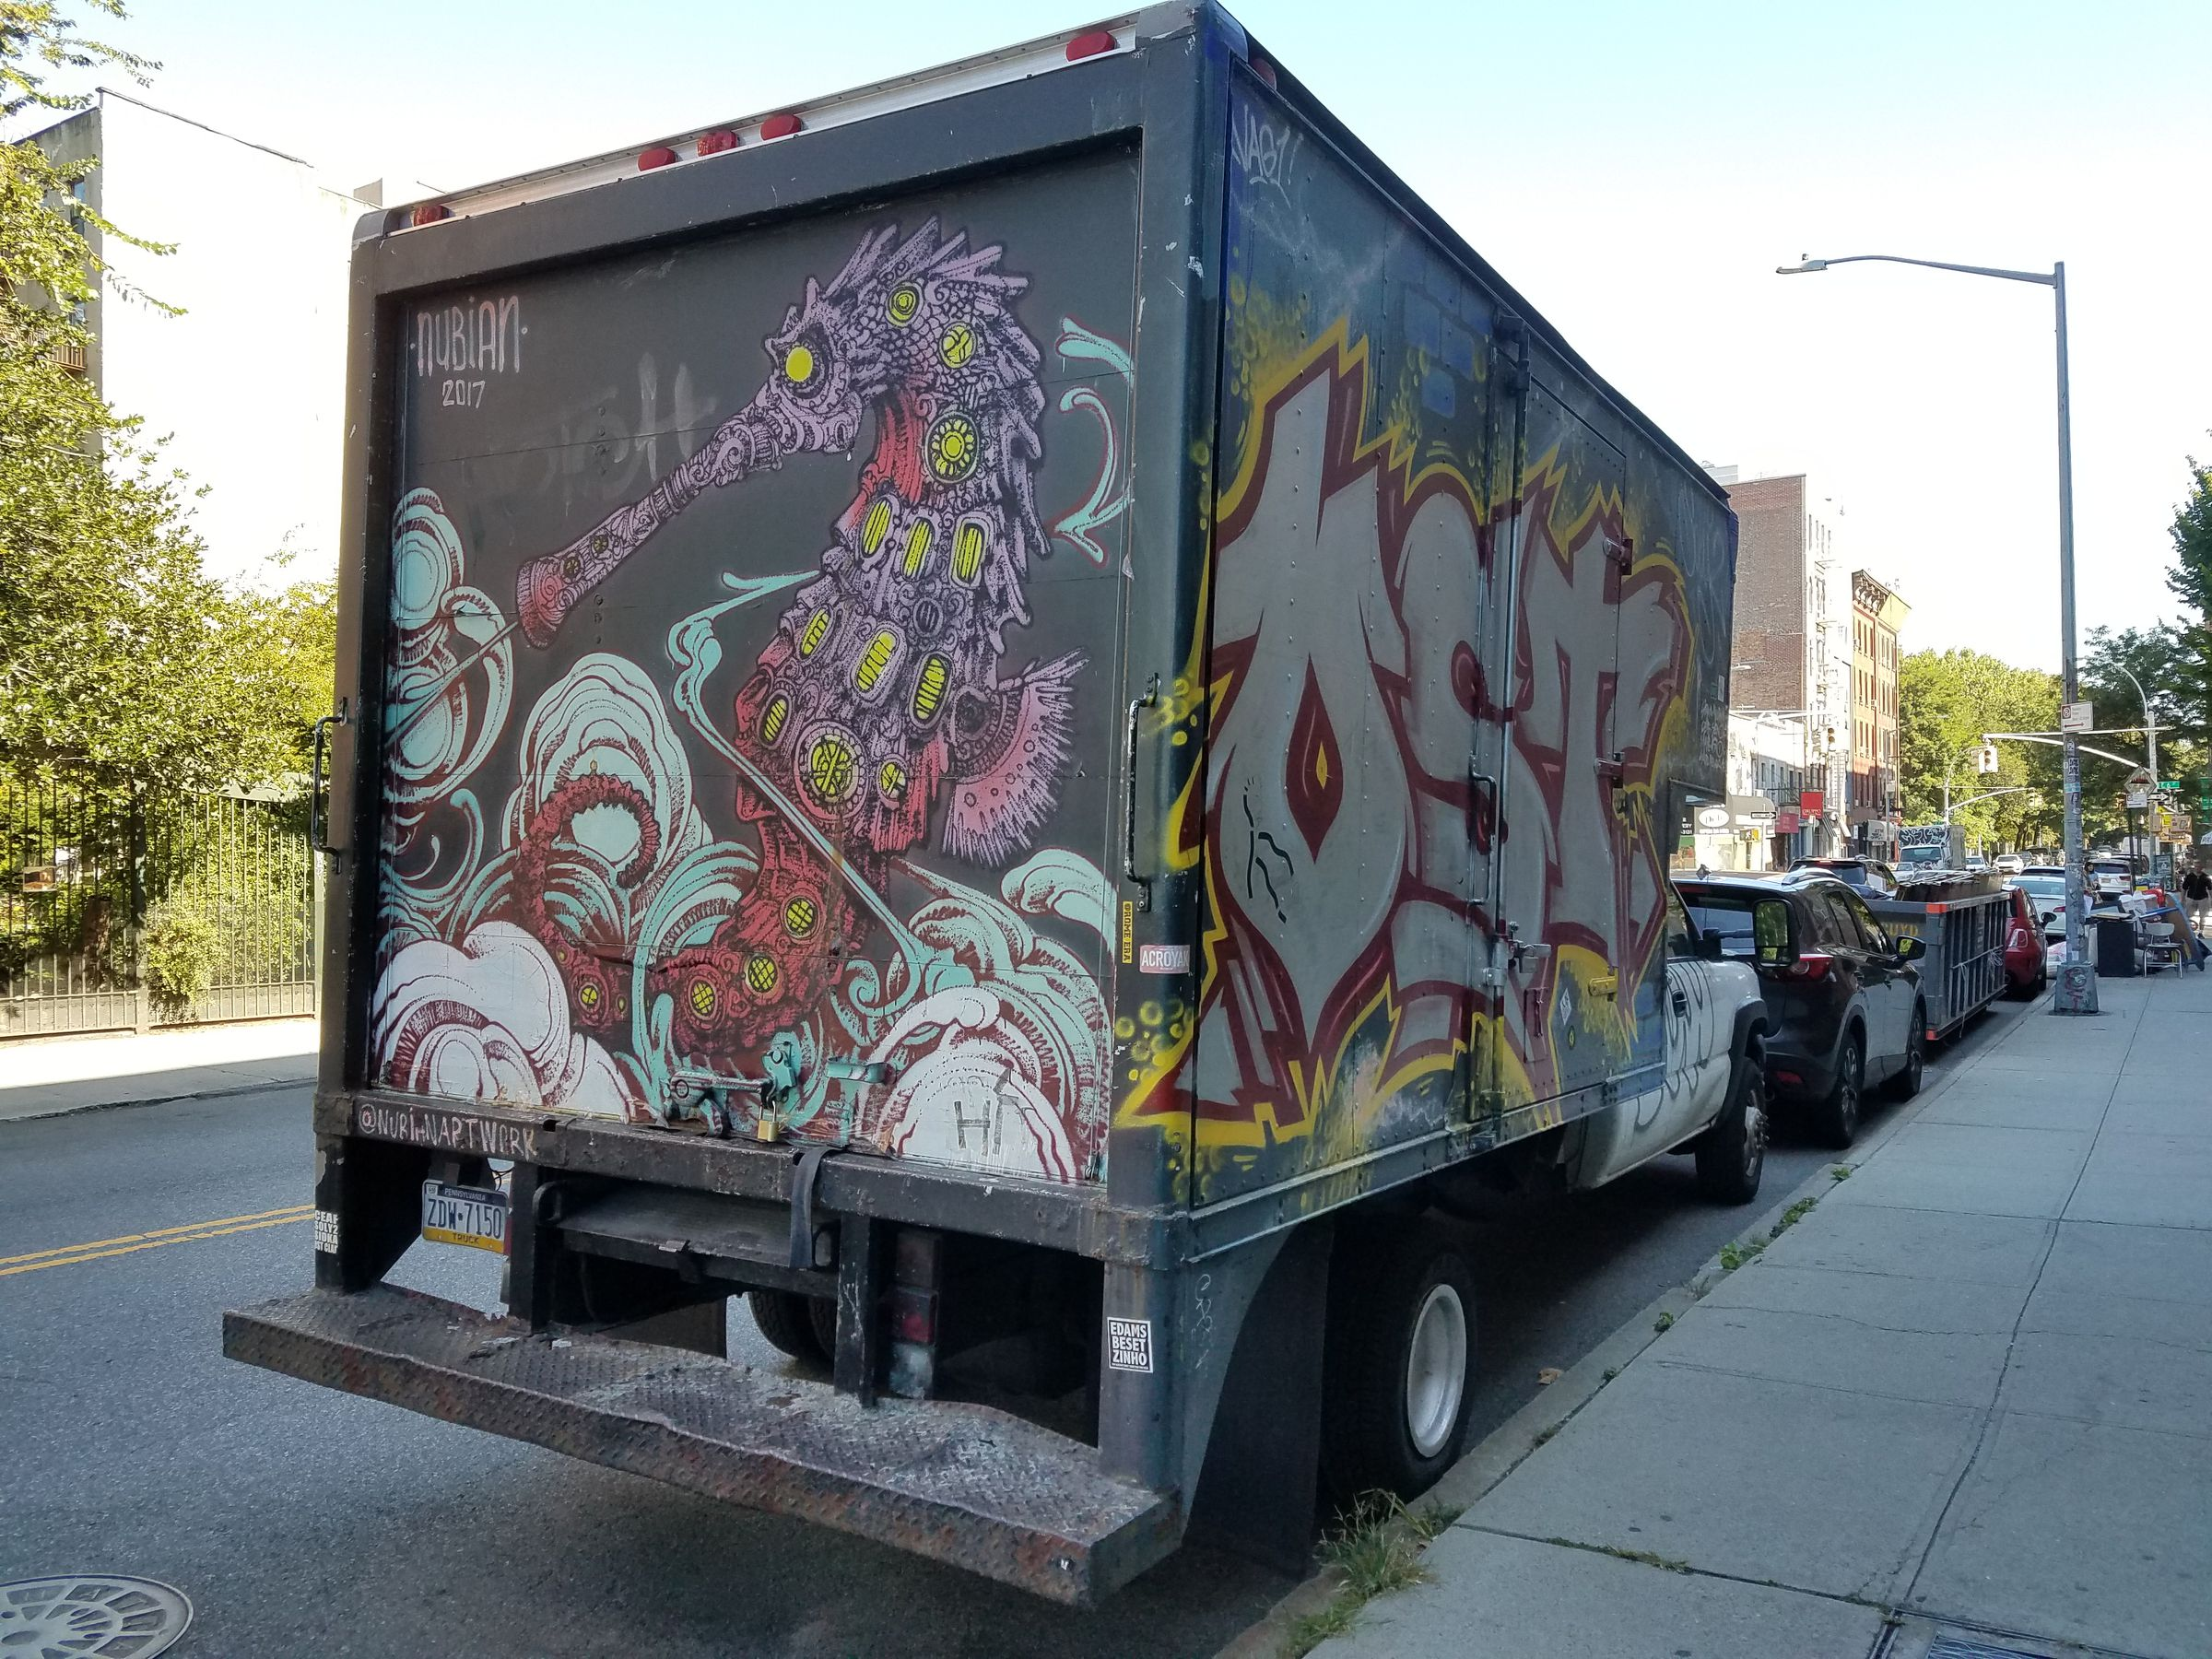 A box truck parked on the side of a city street, covered in art. The rear side features a red and purple mechanical seahorse with yellow grated windows on its body. Its lower body is enveloped in swirls of light blue smoke. The bed of the truck is tagged @NubianArtwork.